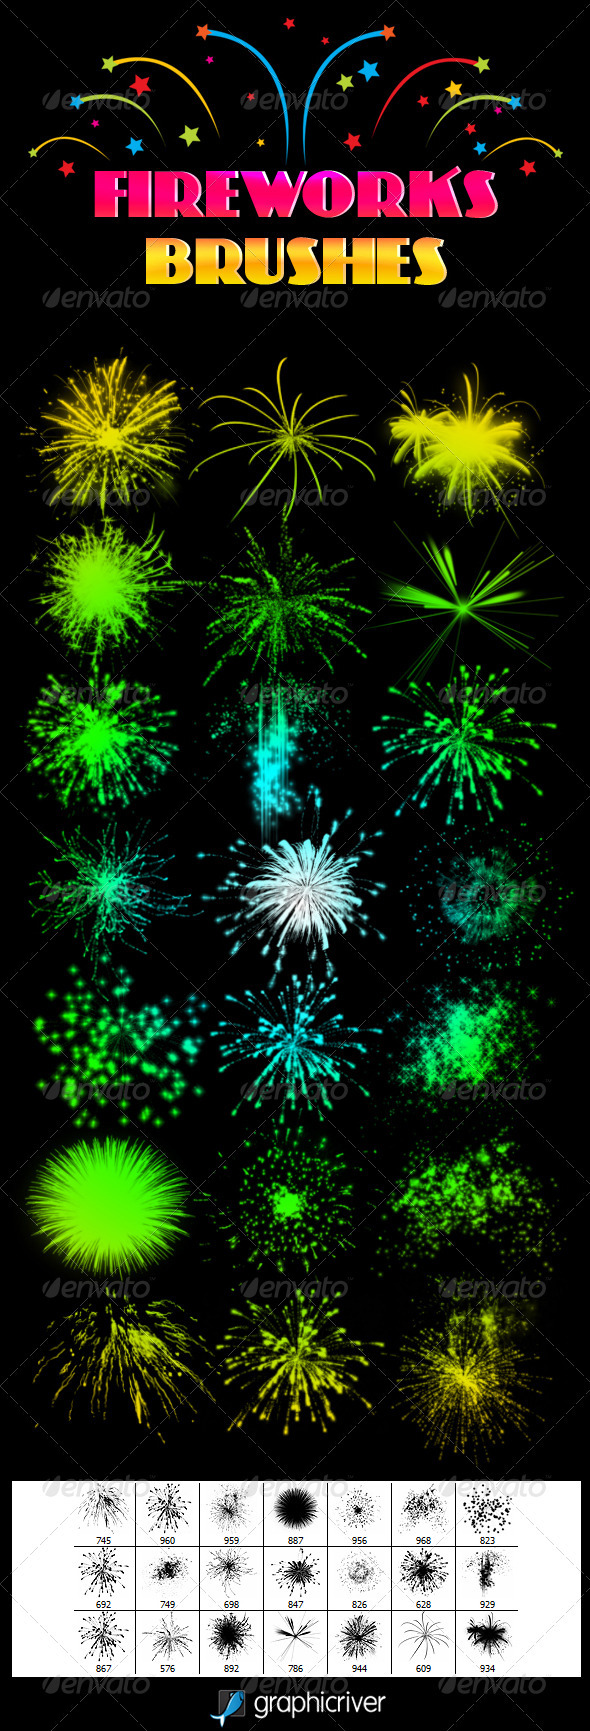 GraphicRiver Fireworks Brushes 3525364